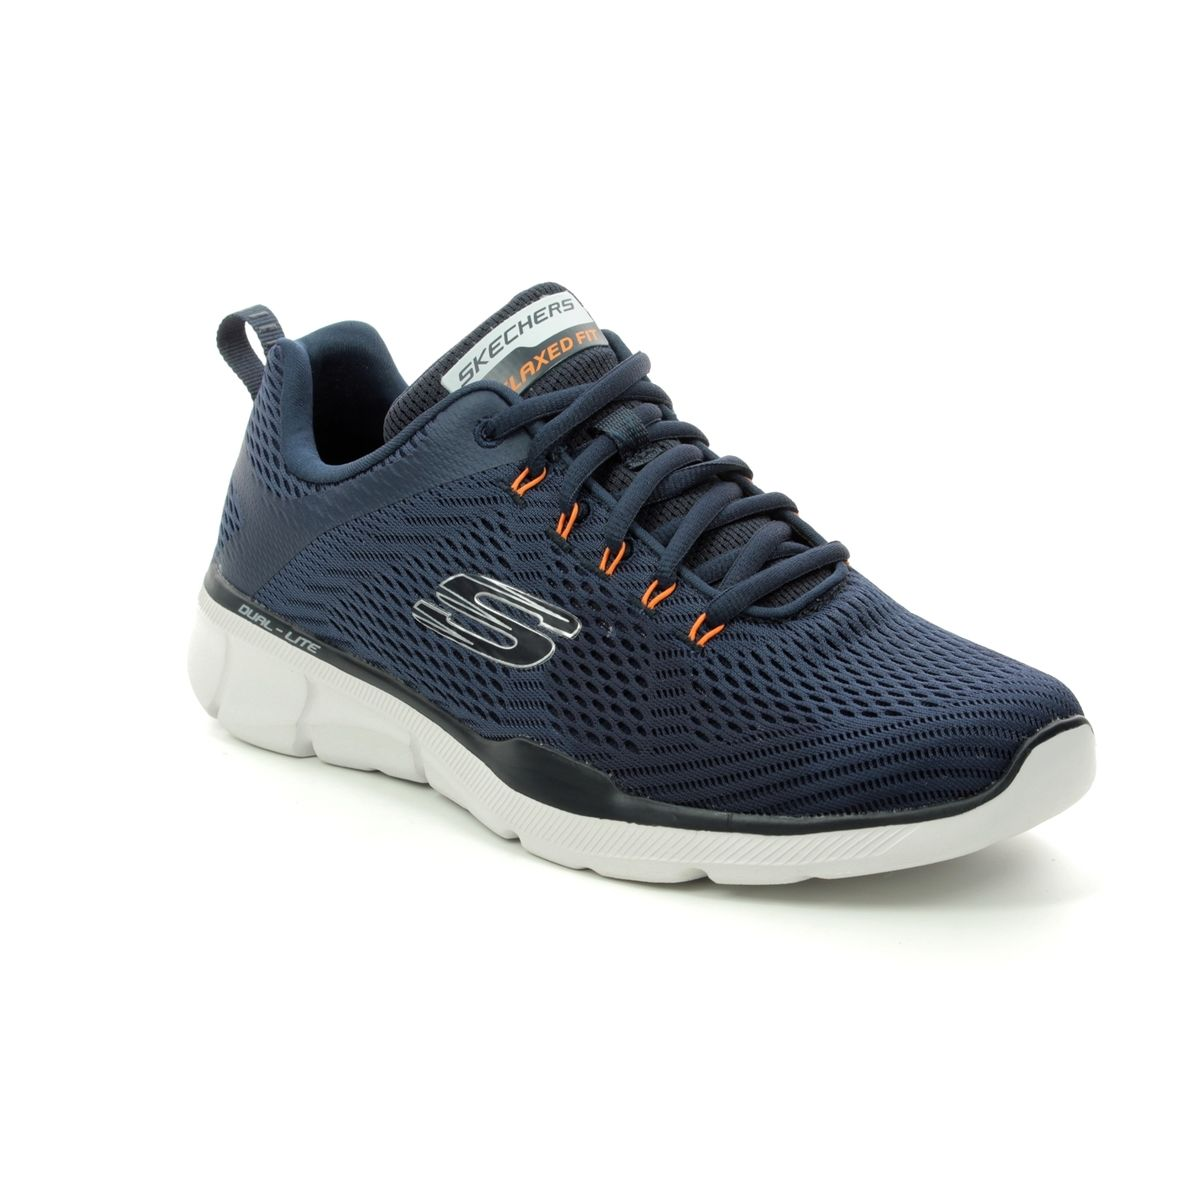 Inhalar fricción caloría  Skechers Equalizer 3.0 Relaxed Fit 52927 NVOR Navy trainers